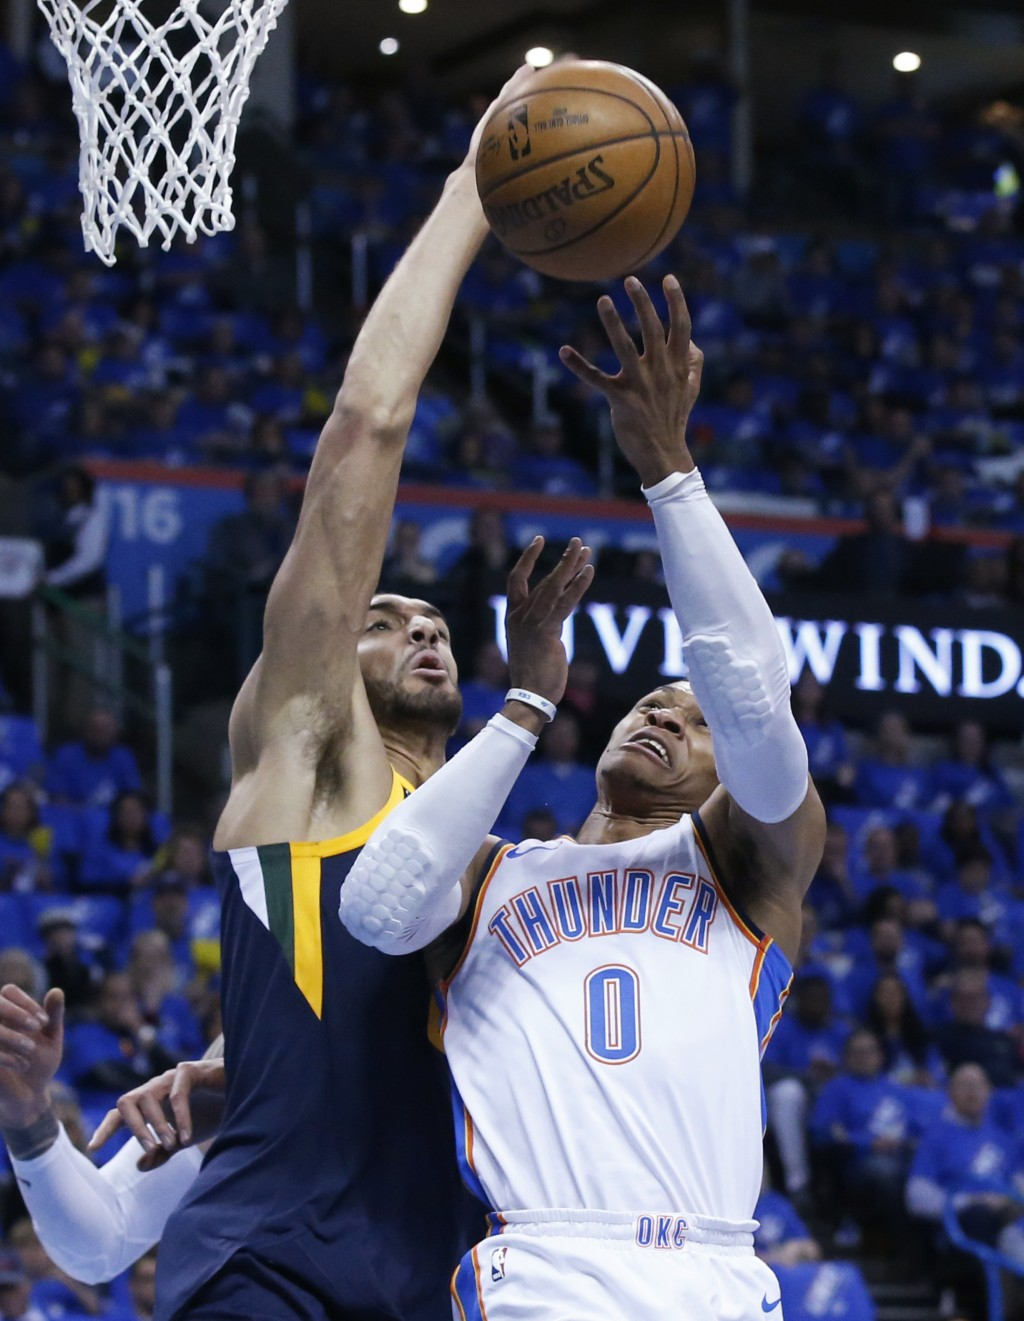 Utah Jazz center Rudy Gobert, left, blocks a shot by Oklahoma City Thunder guard Russell Westbrook (0) in the first half of Game 1 of an NBA basketbal